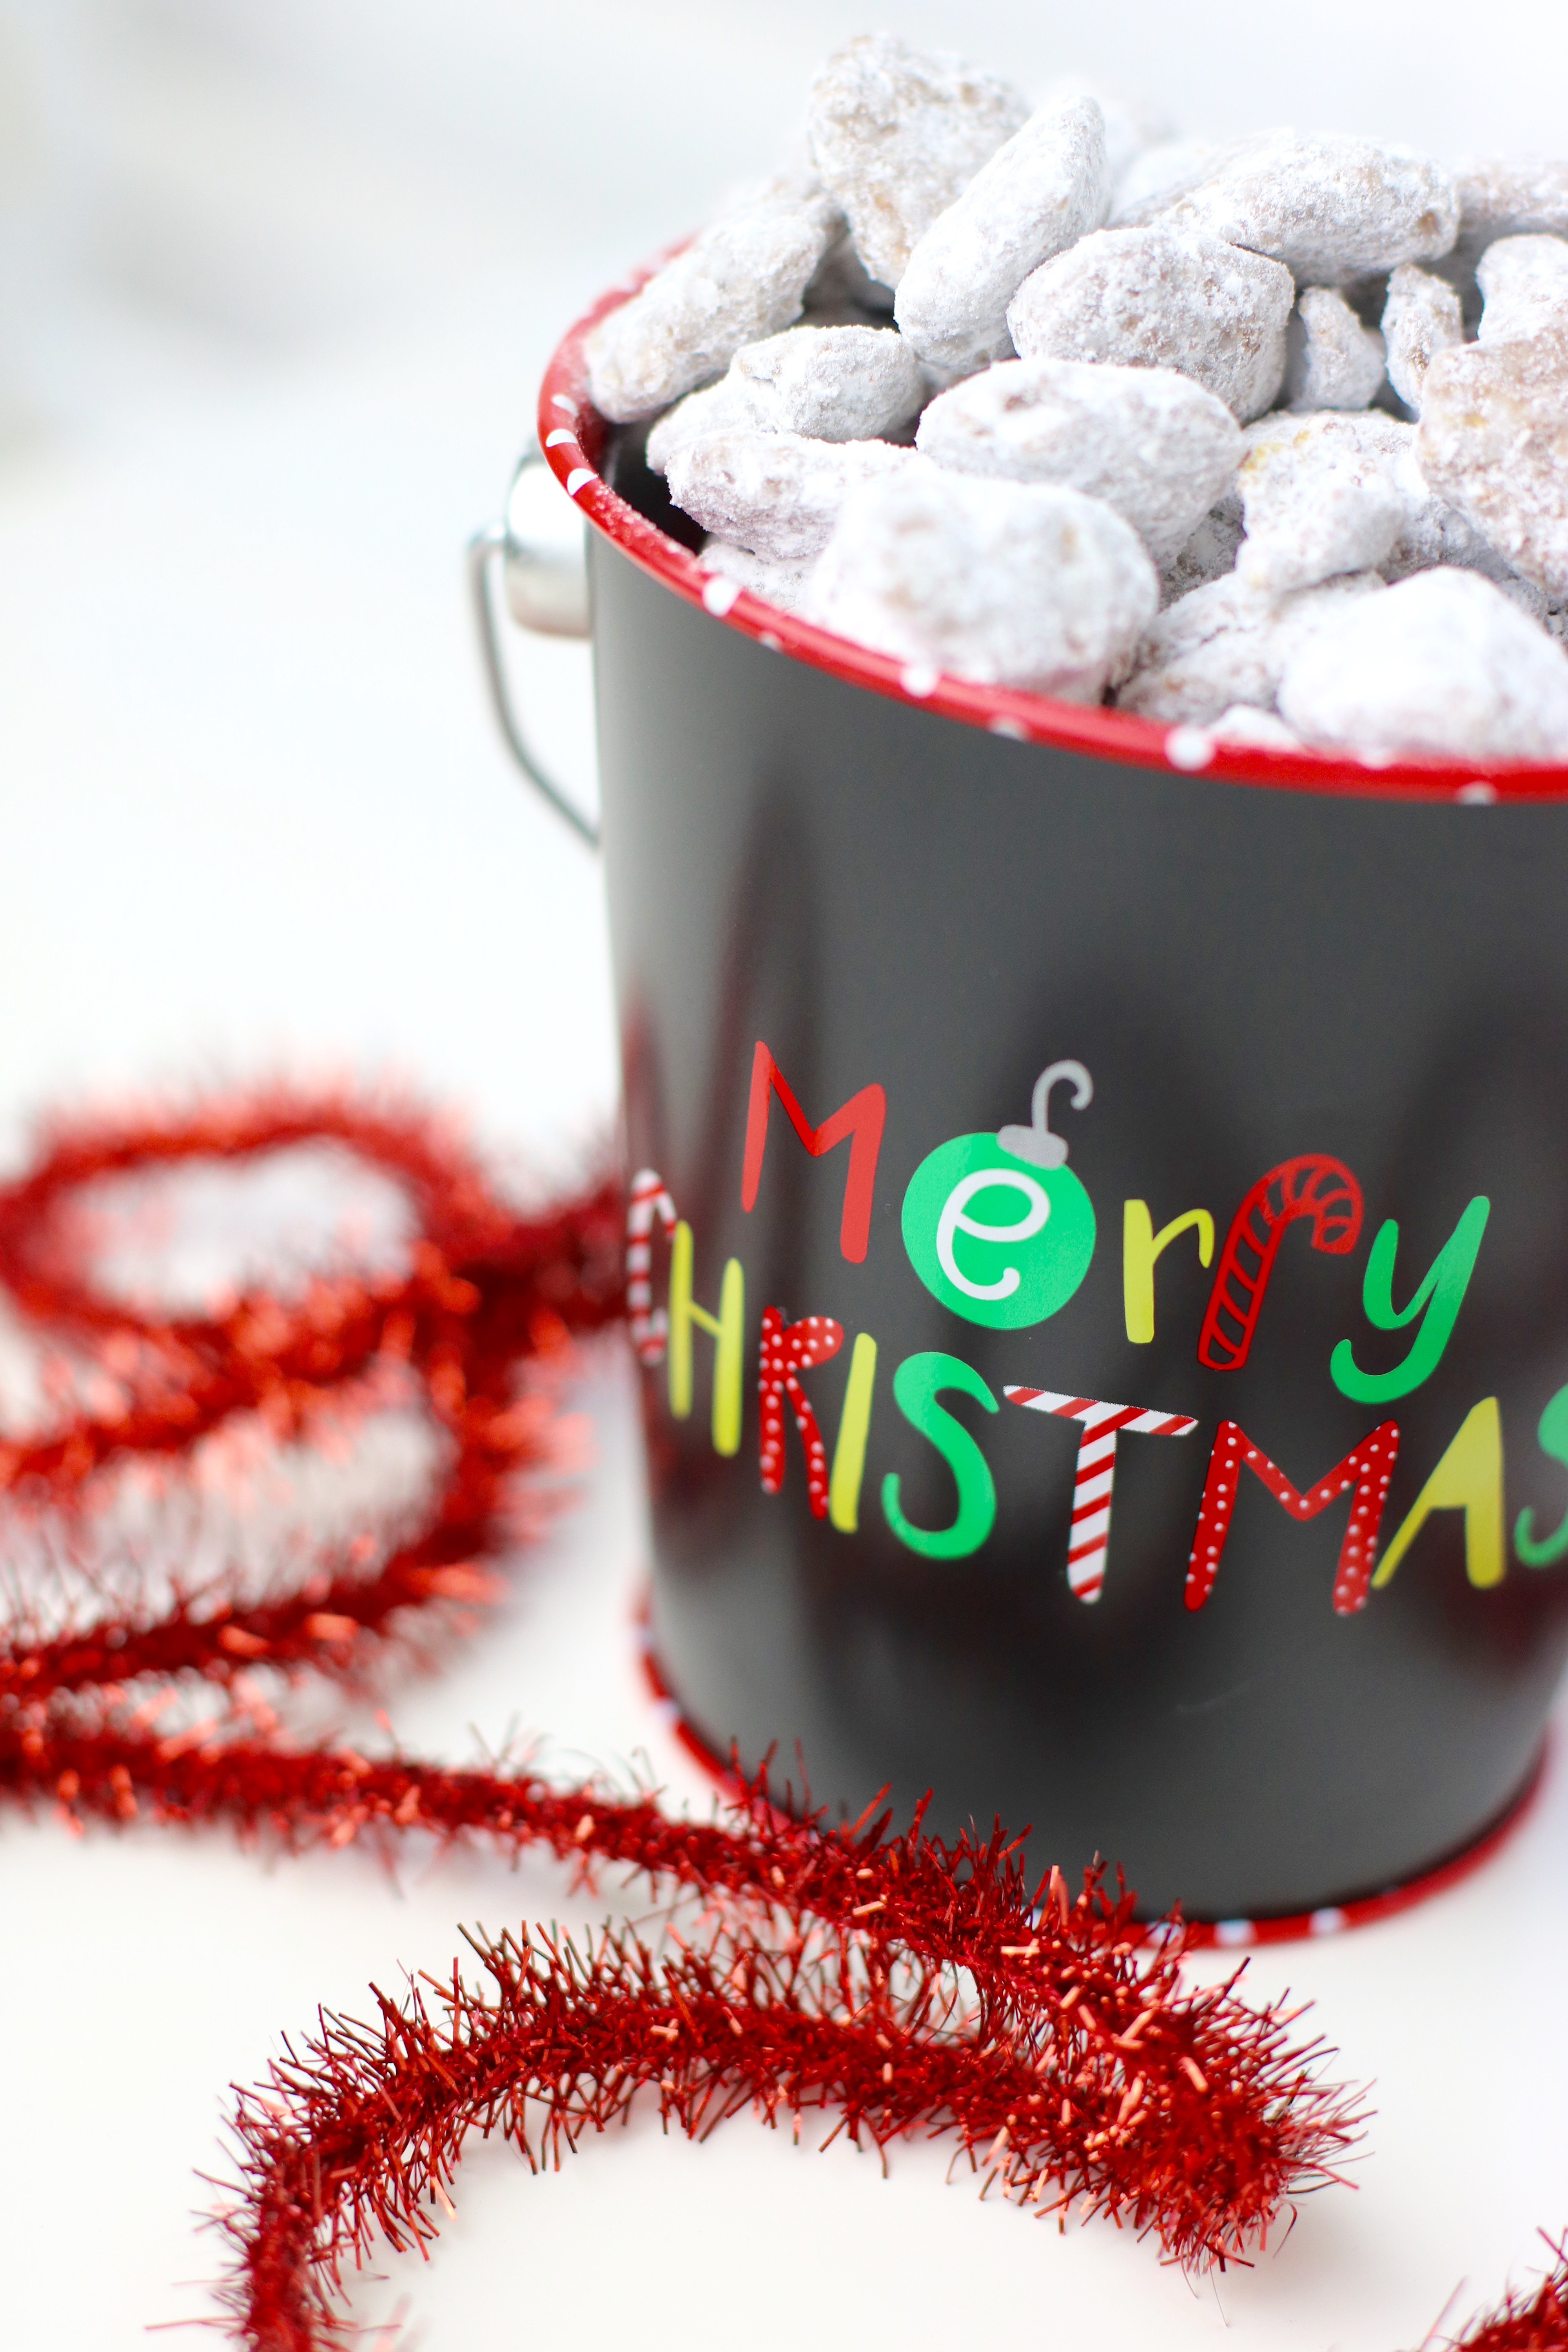 Puppy Chow Recipe #PuppyChow #Dessert #Snack #ChristmasTreat #Treats #ChristmasCookie